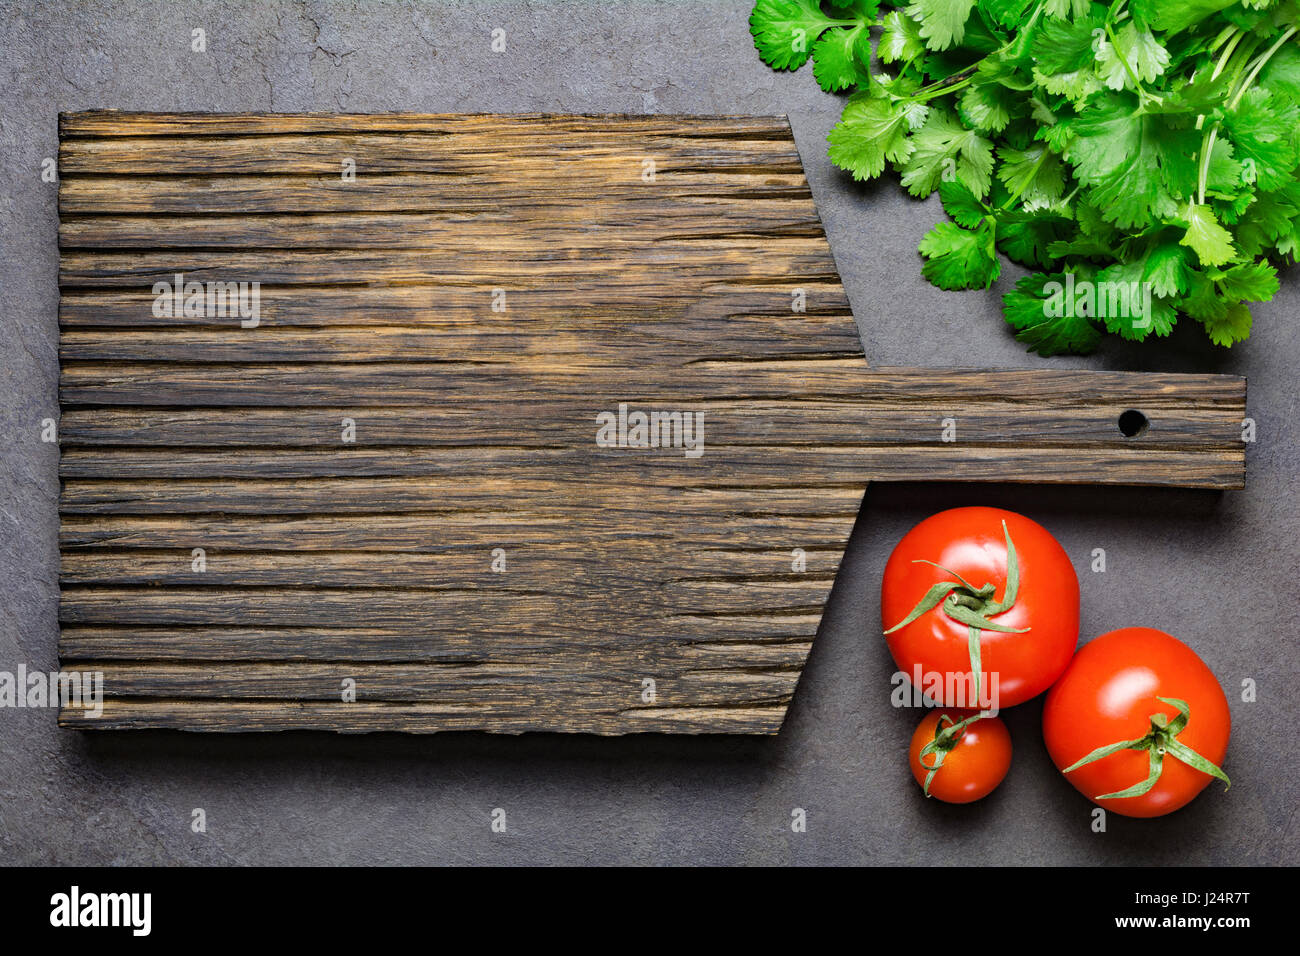 cutting board with food. Food Background: Wooden Cutting Board, Fresh Tomatoes And Bunch Of Cilantro. Copy Space For Your Text Or Design. Top View Board With